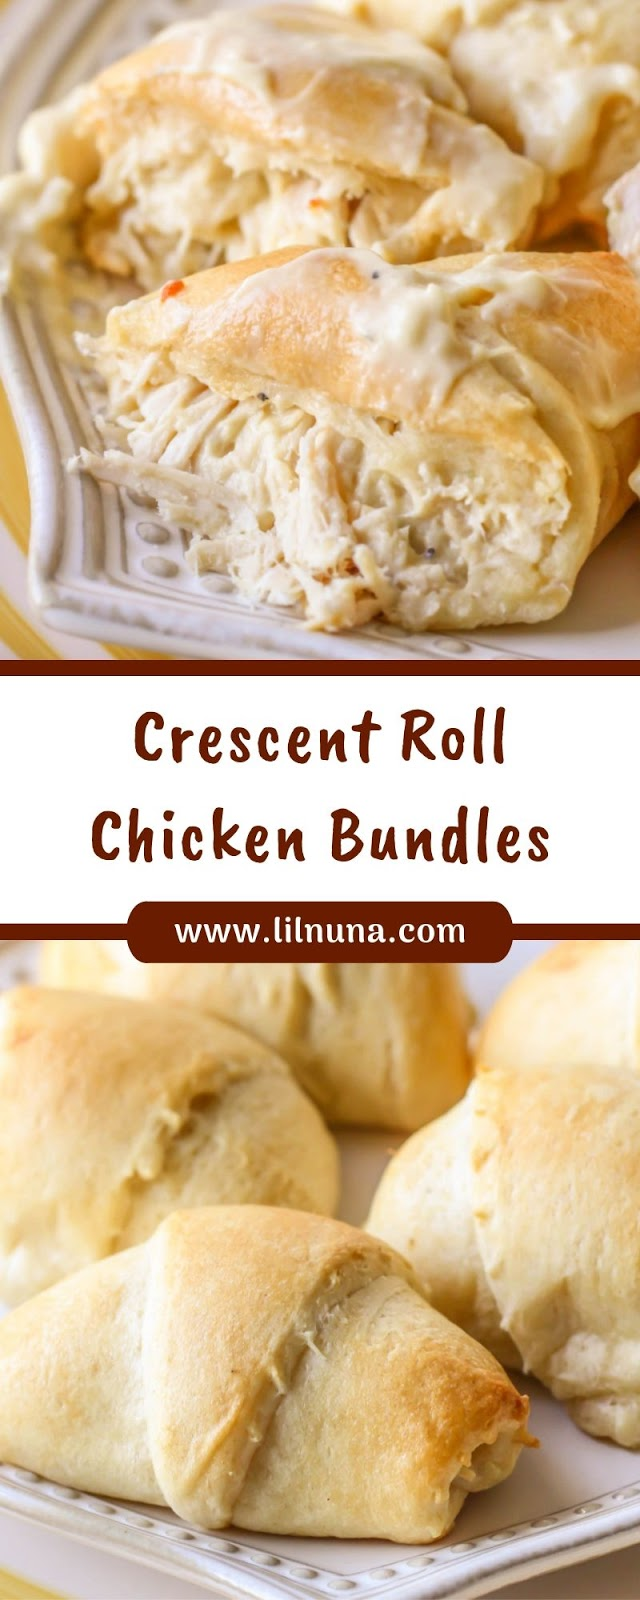 Crescent Roll Chicken Bundles